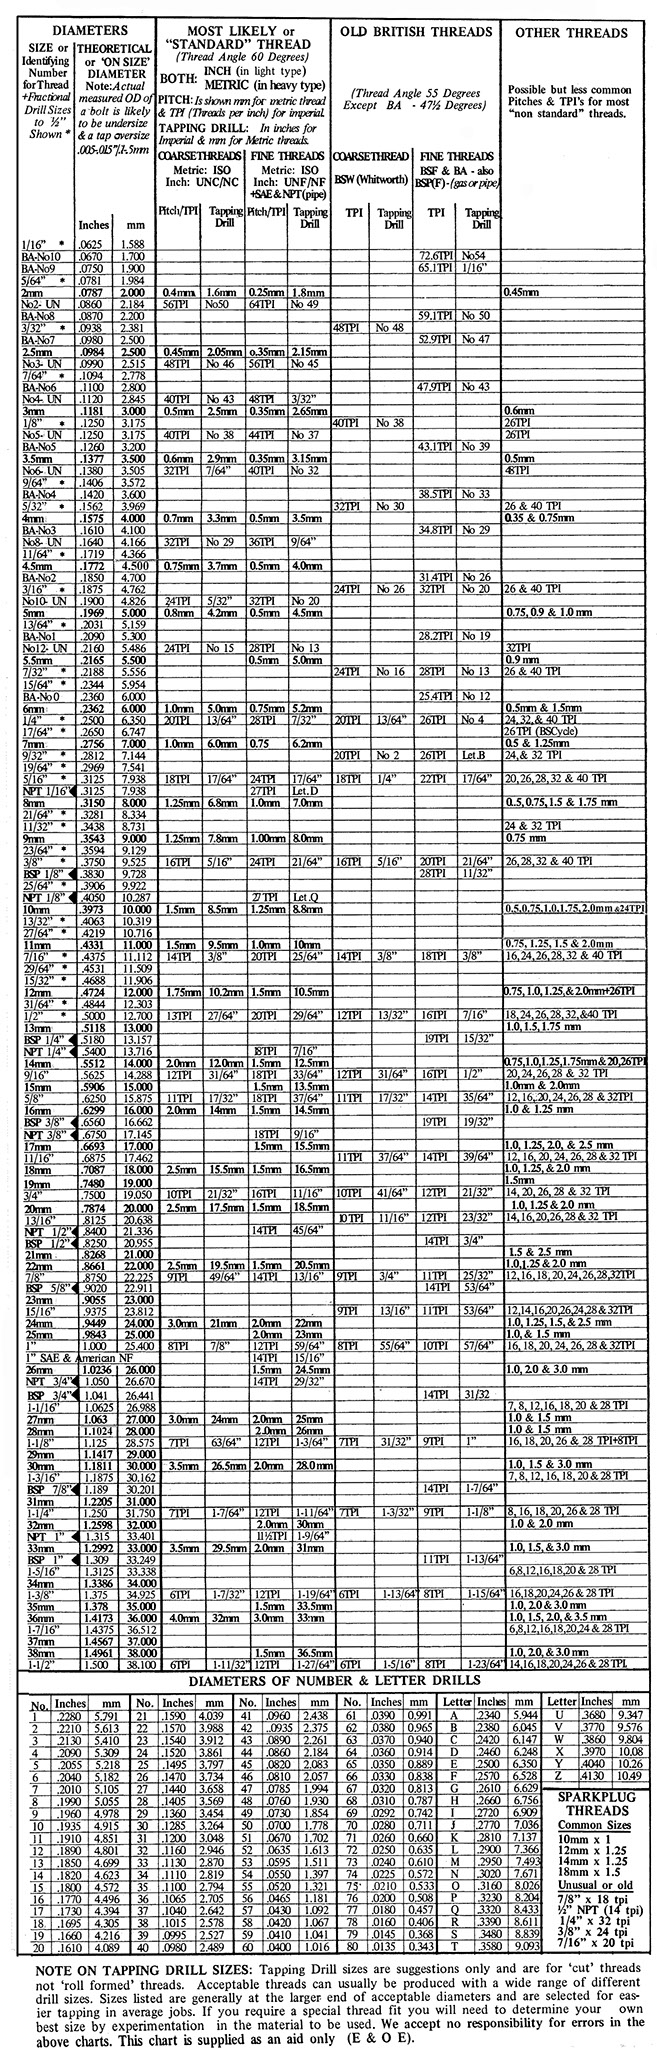 worksheet Letter Number Chart tapping drill chart metric threads imperial for thread bsw ba bsf bsp